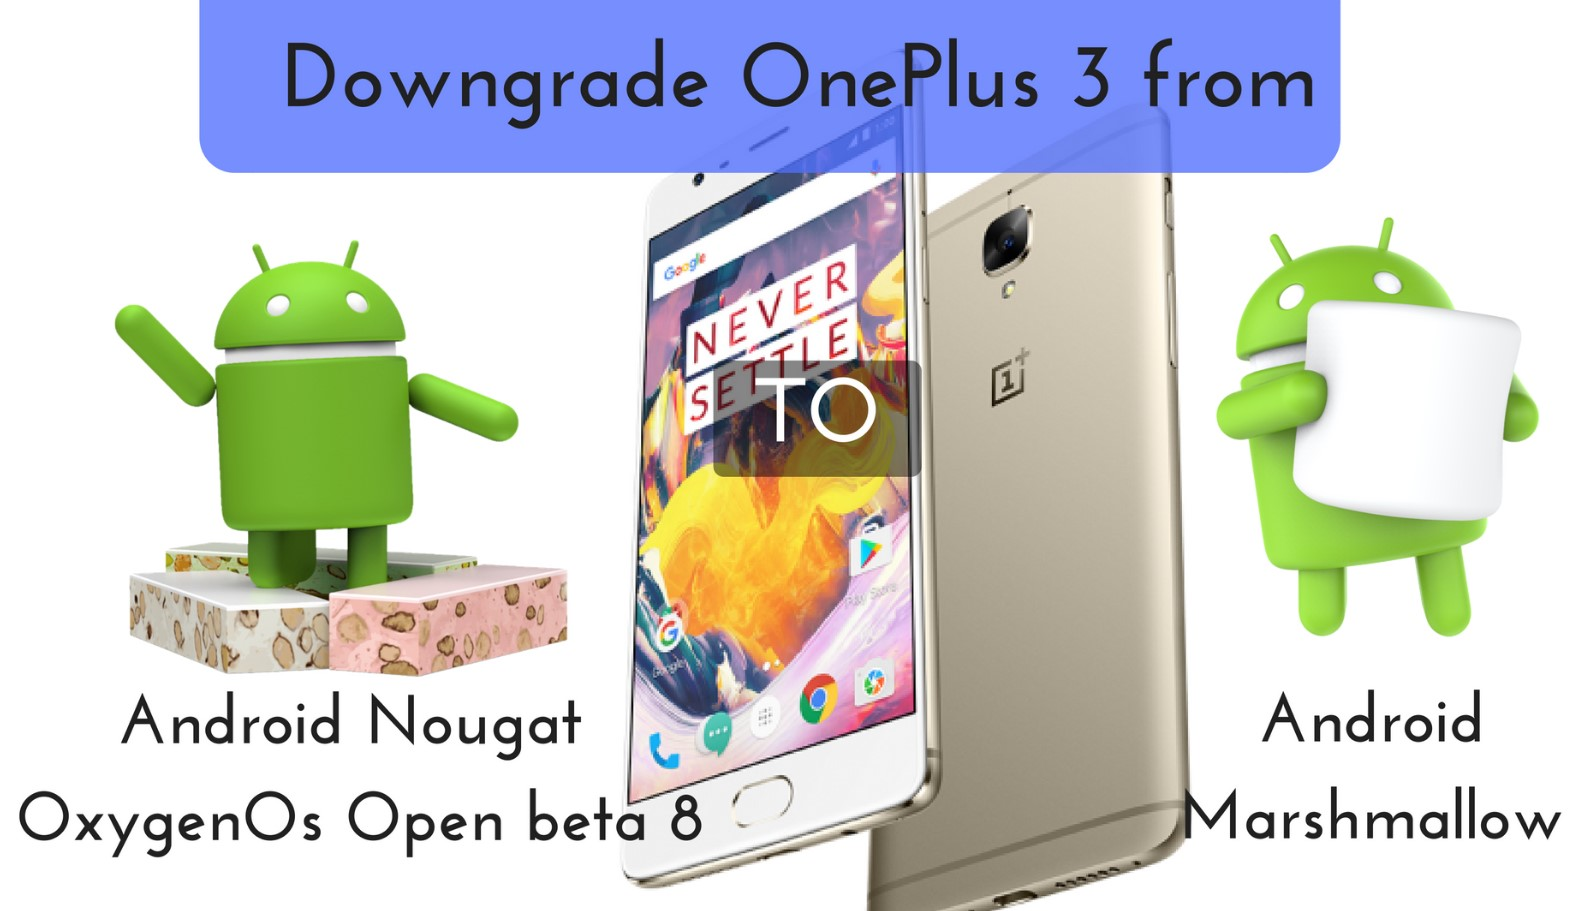 to Downgrade OnePlus 3 from Android Nougat to Marshmallow.